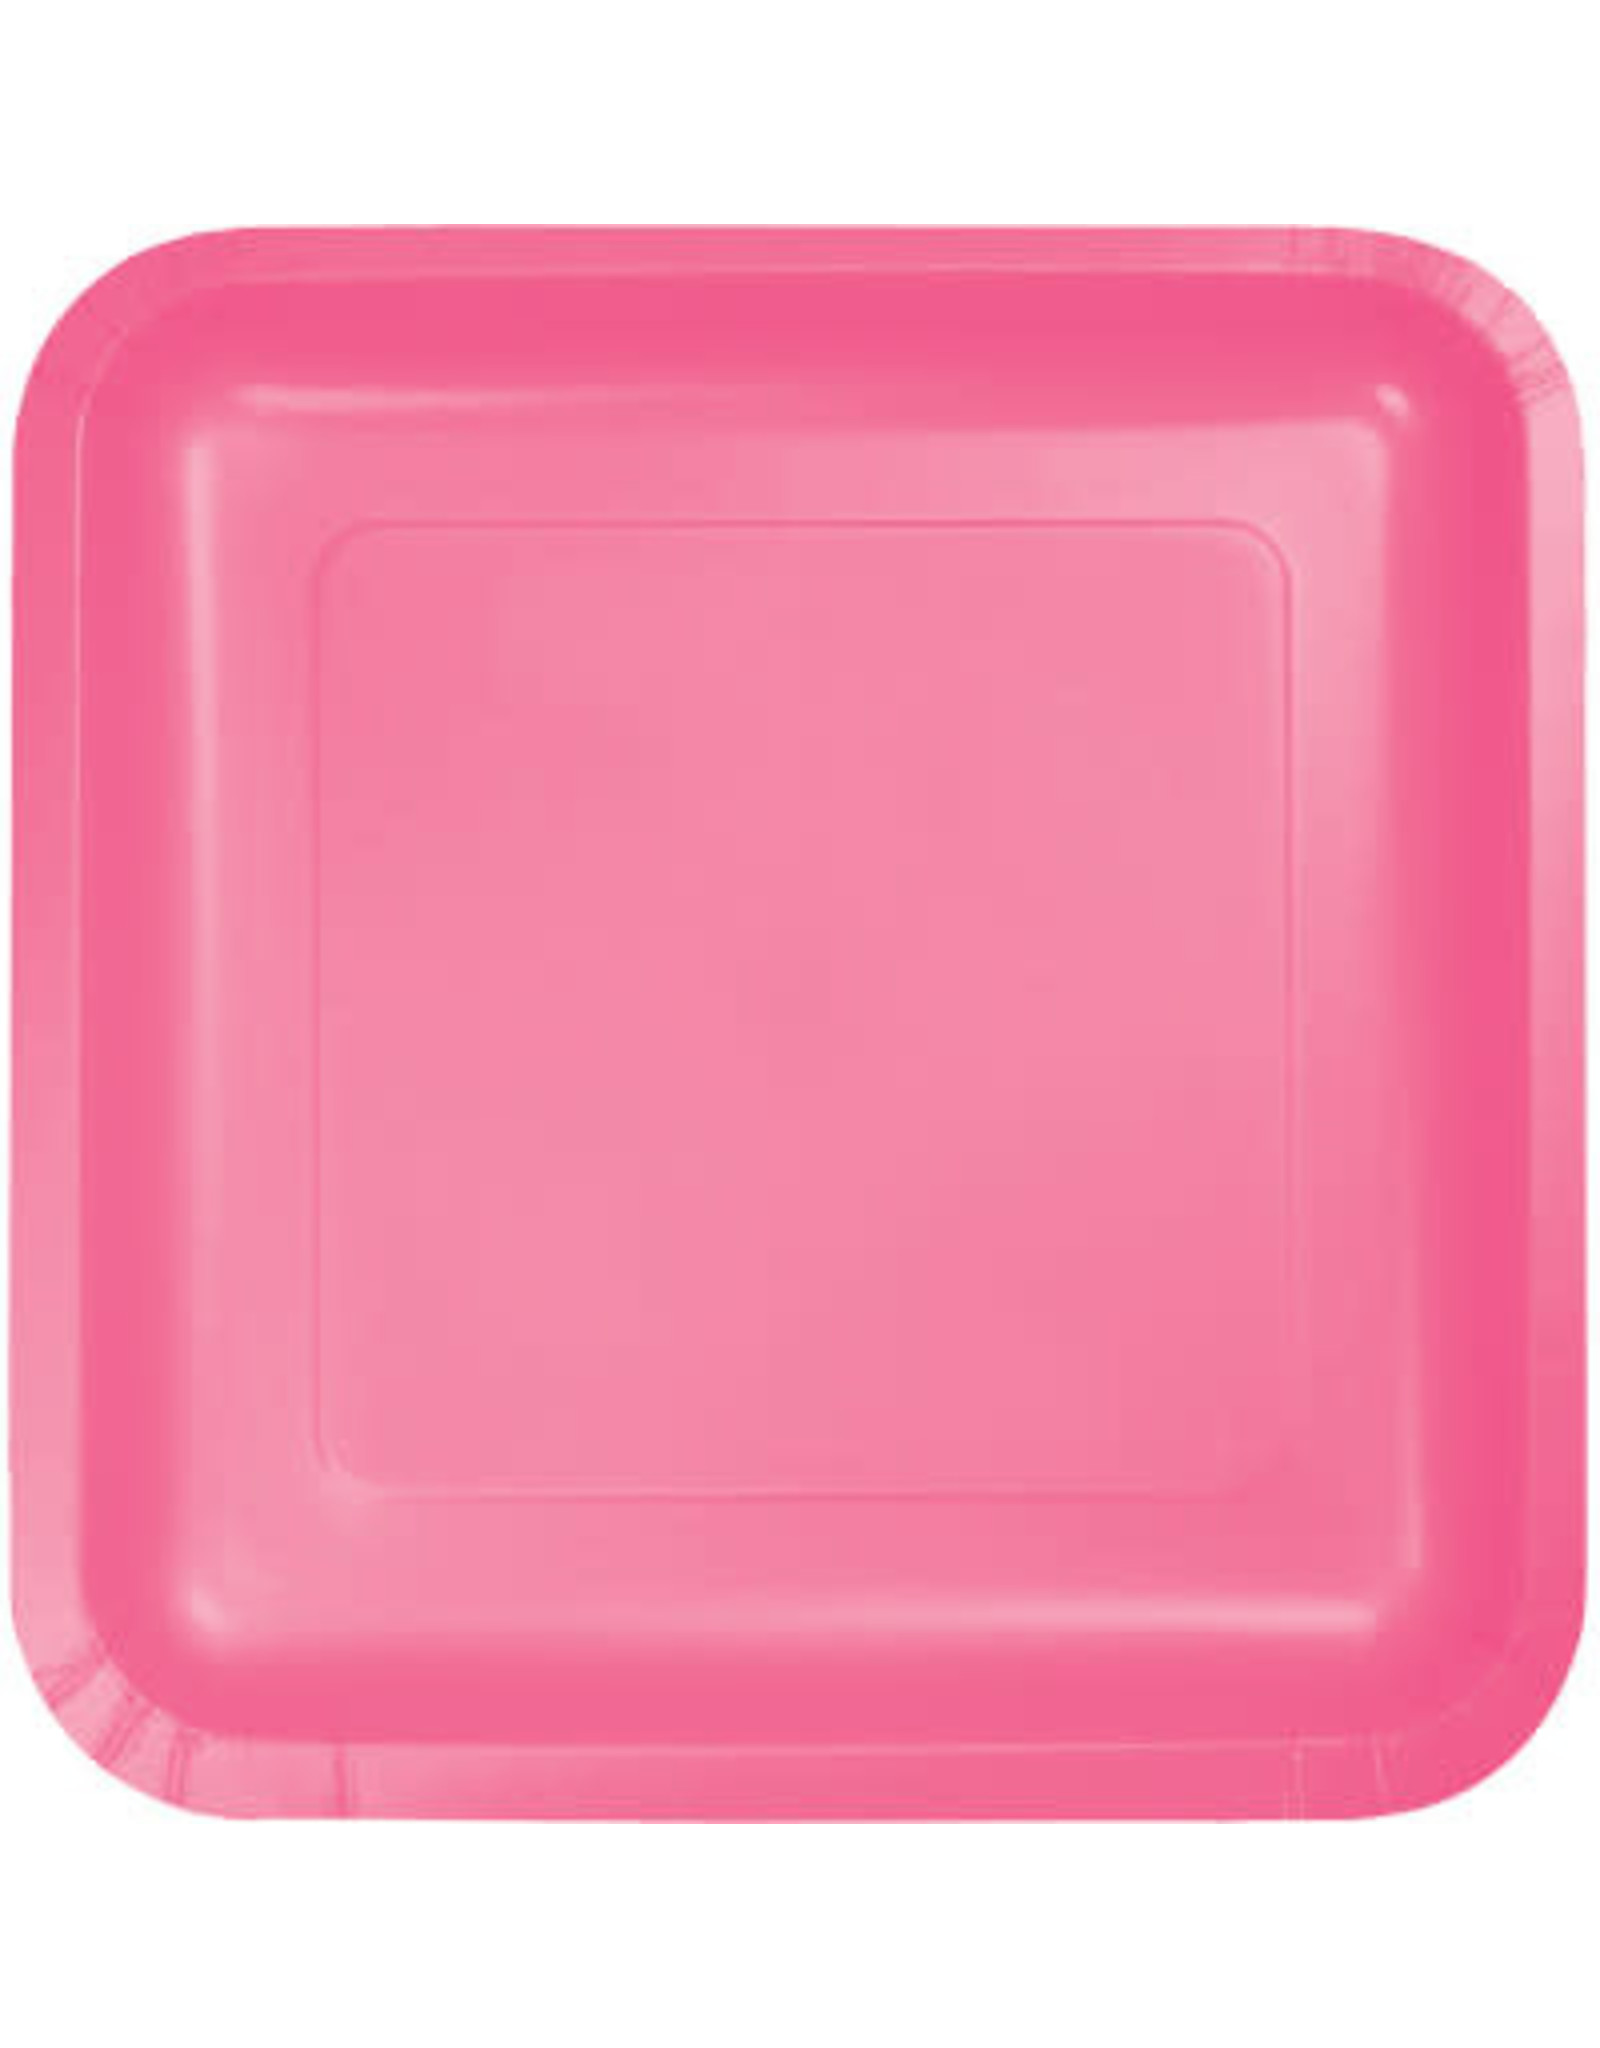 Touch of Color CANDY PINK SQUARE DESSERT PLATES